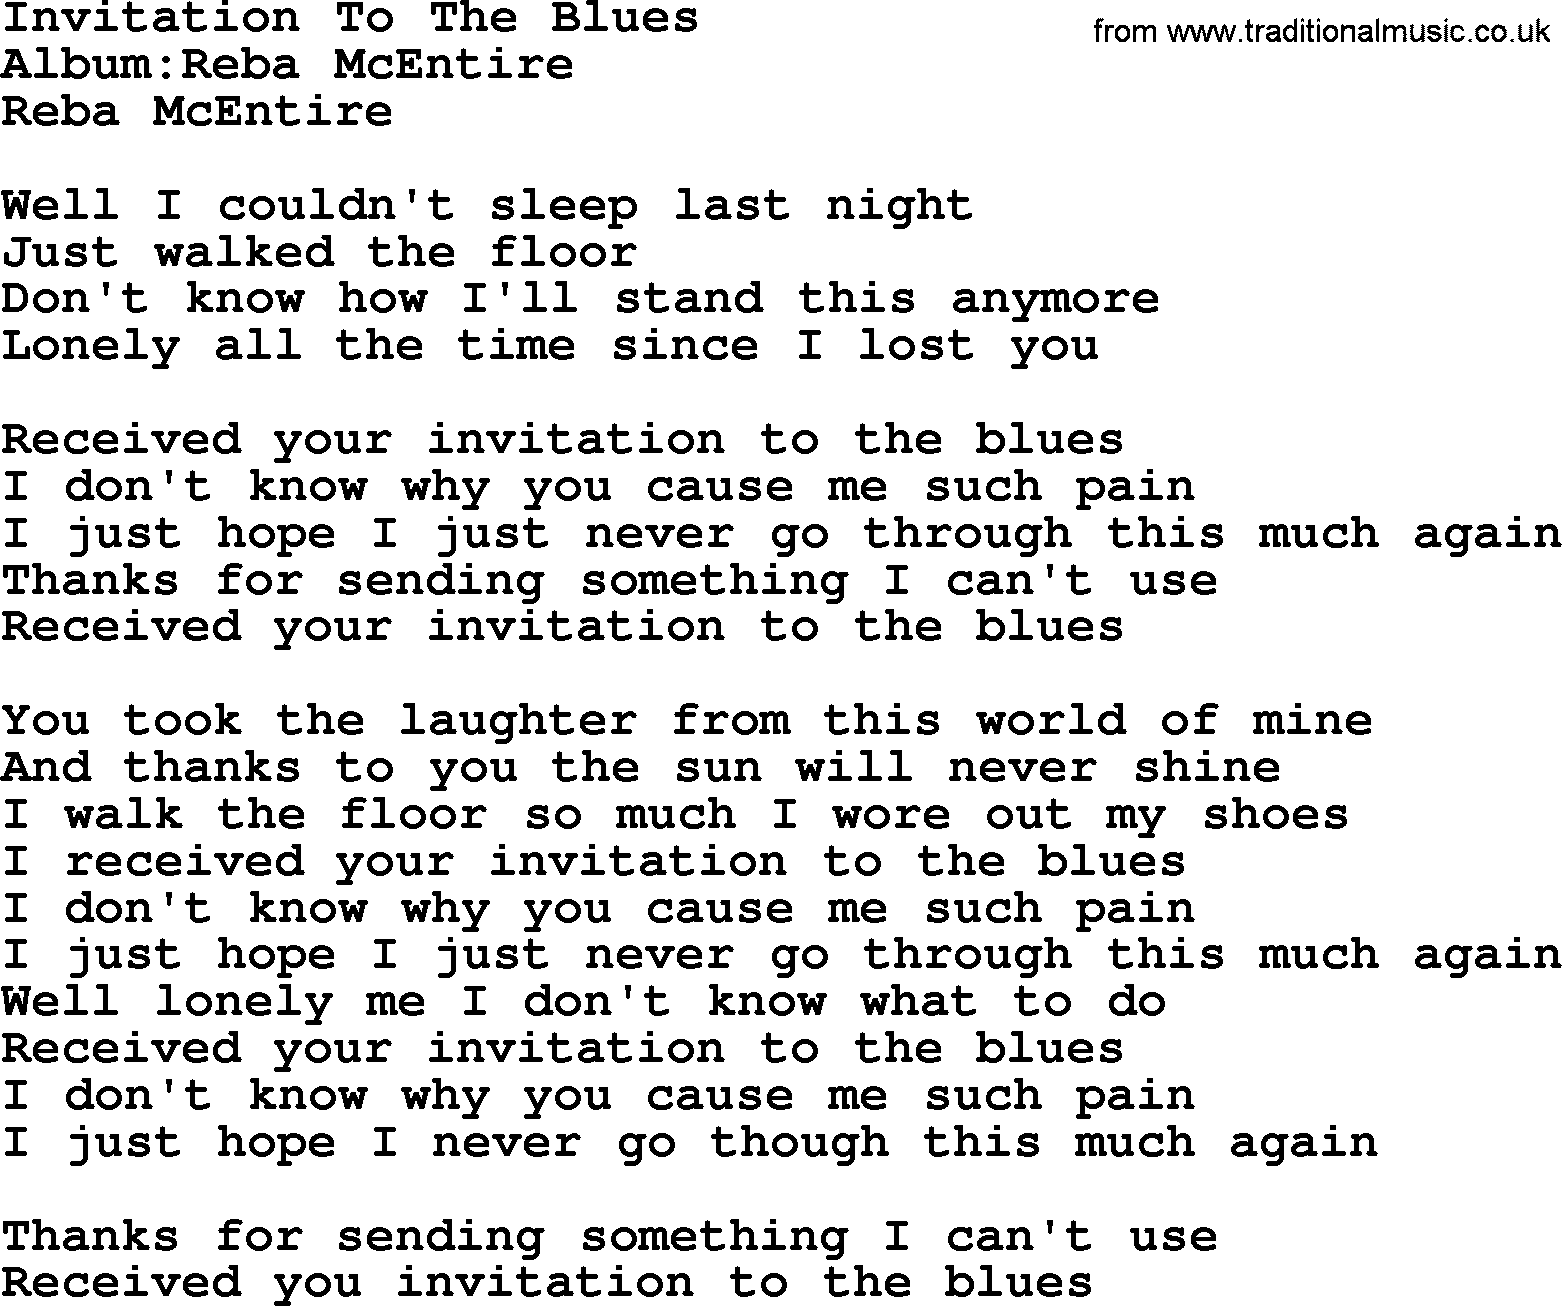 Invitation to the blues by reba mcentire lyrics reba mcentire song invitation to the blues lyrics stopboris Gallery